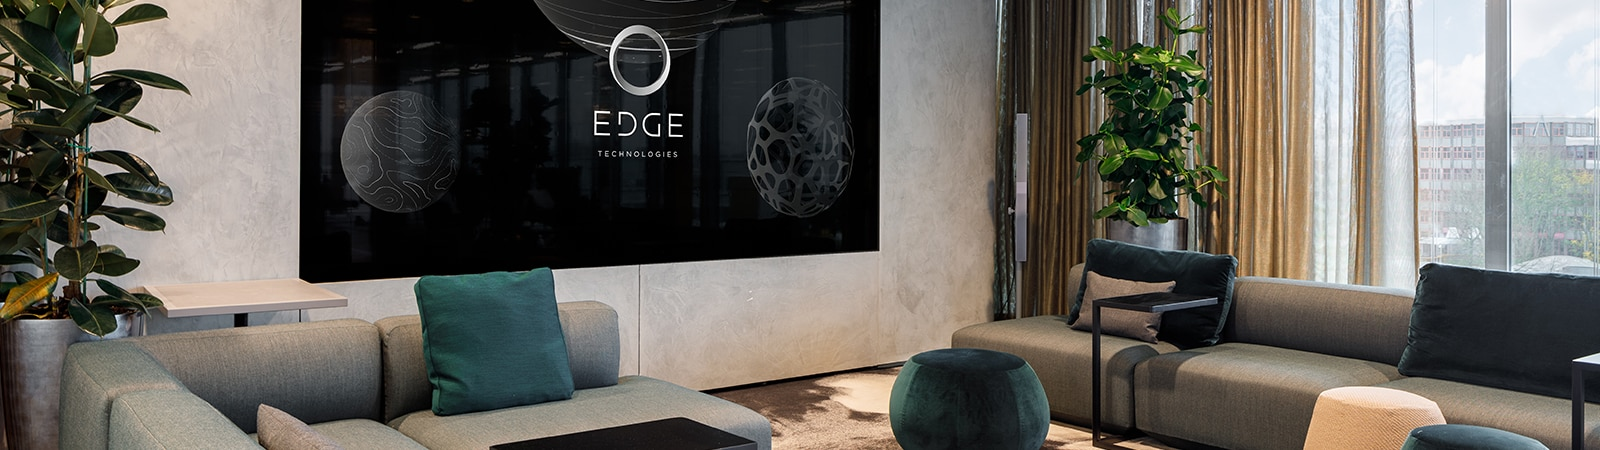 Crystal LED displays at EDGE Technologies landmark sustainable building